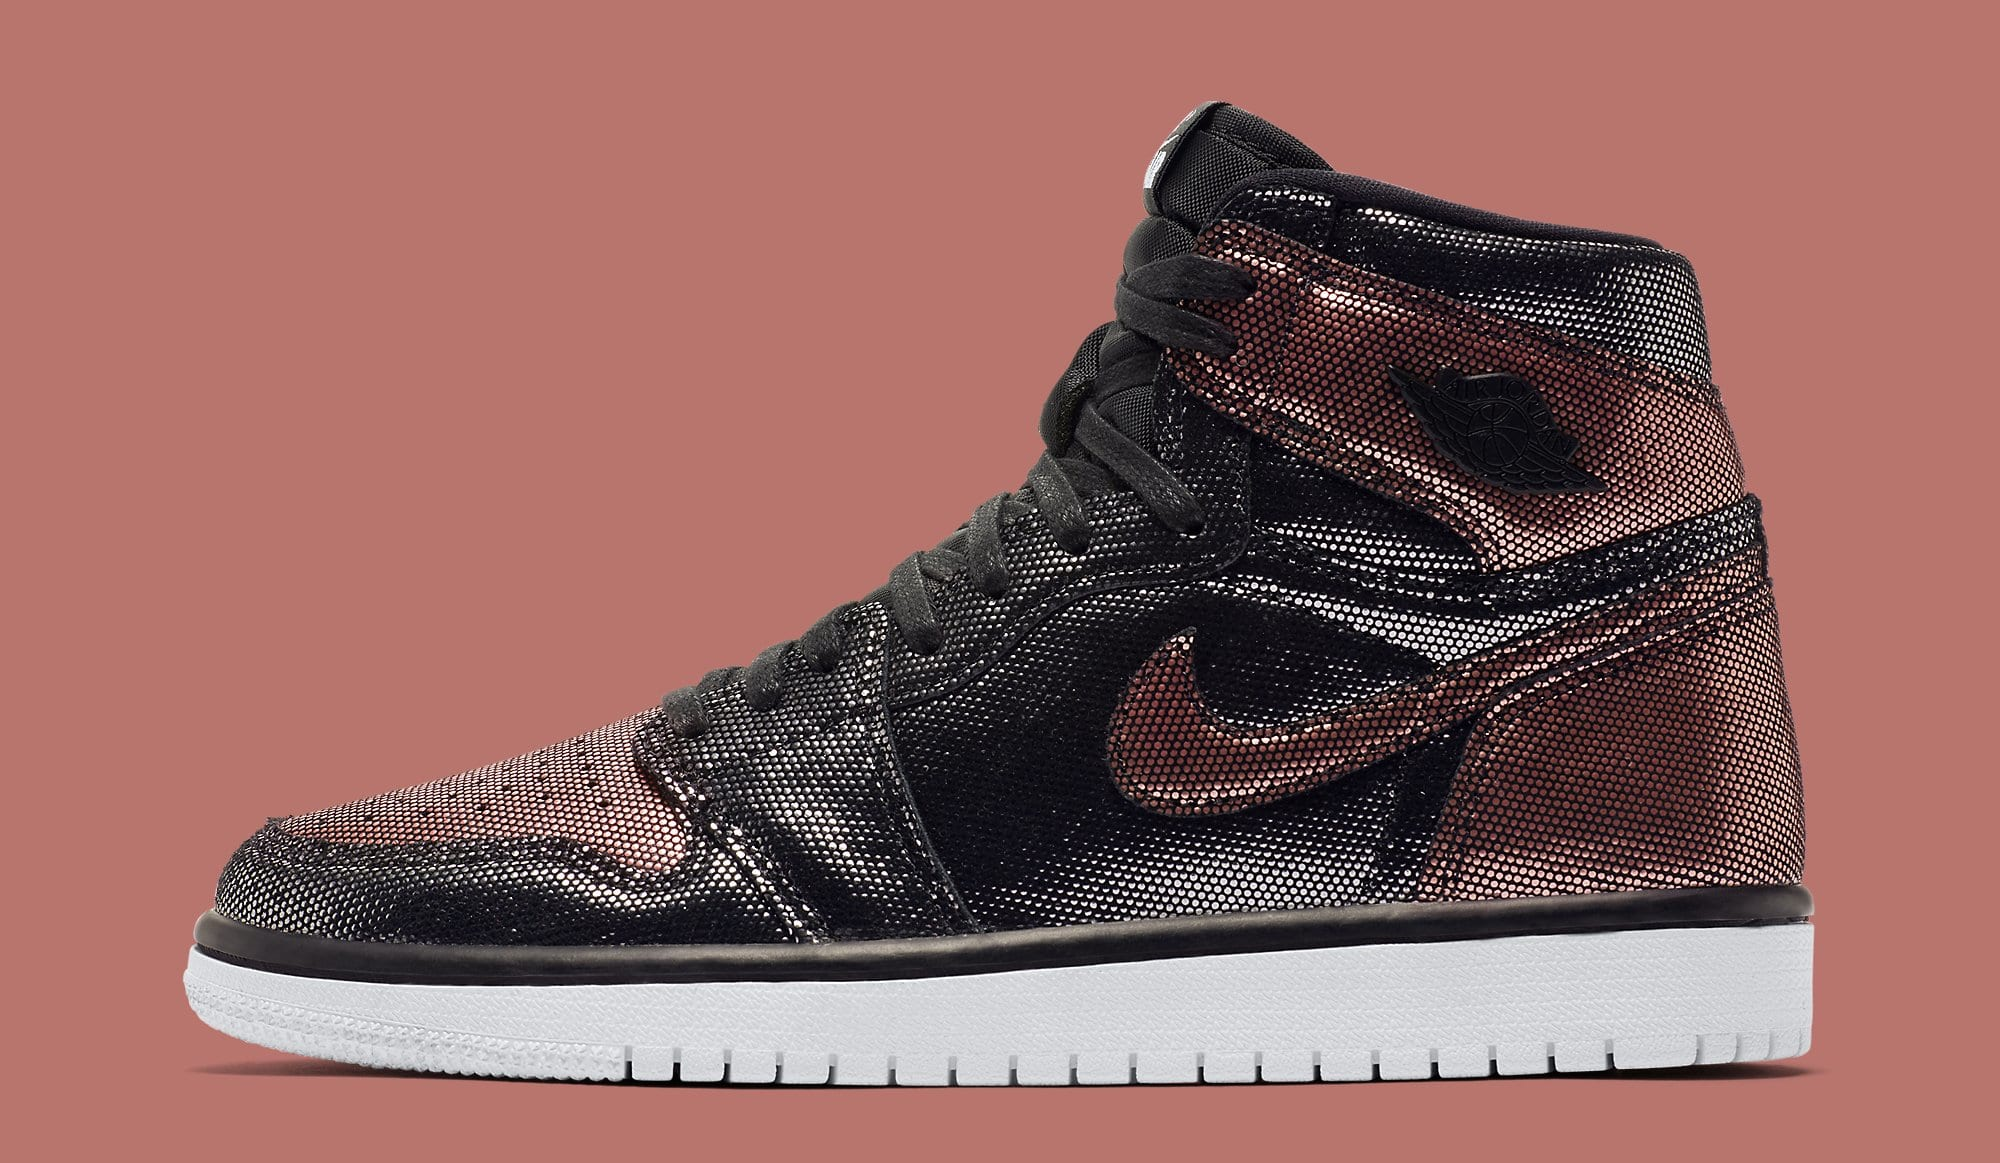 Air Jordan 1 High OG WMNS 'Fearless' Release Date CU6690-006 ...